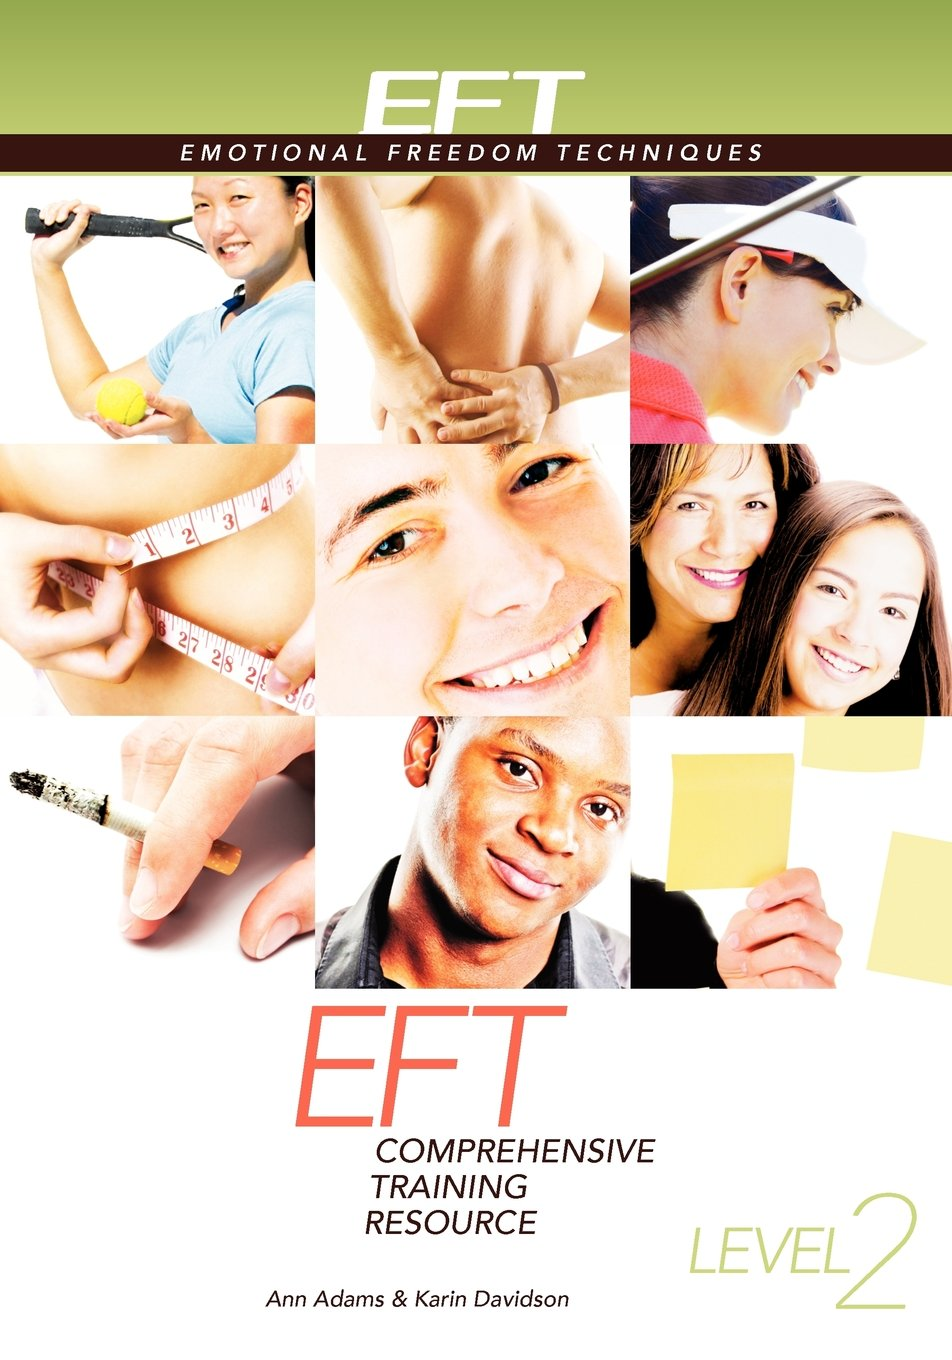 EFT comprehensive training resource level 2